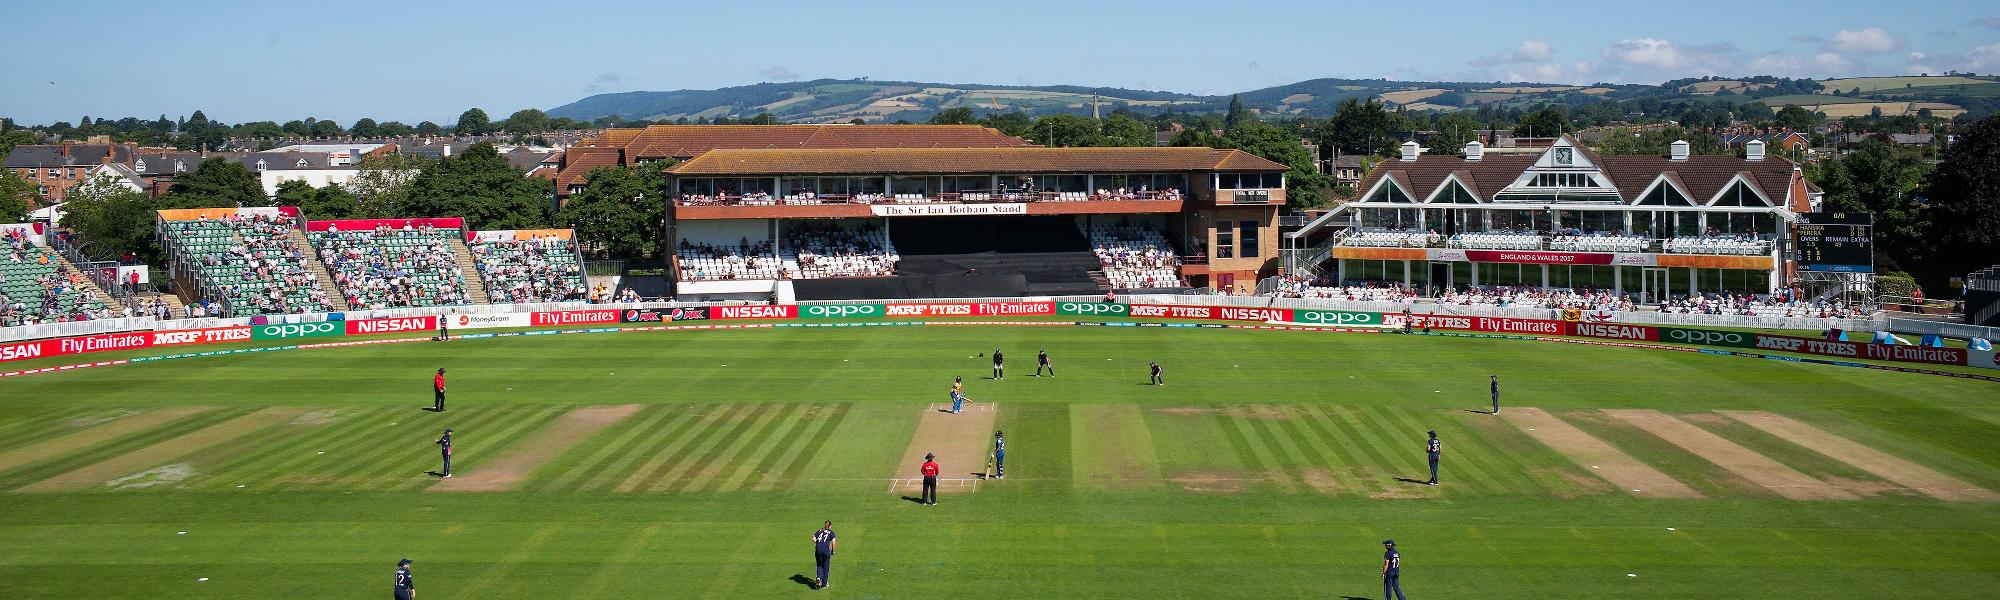 County Ground Taunton.jpg